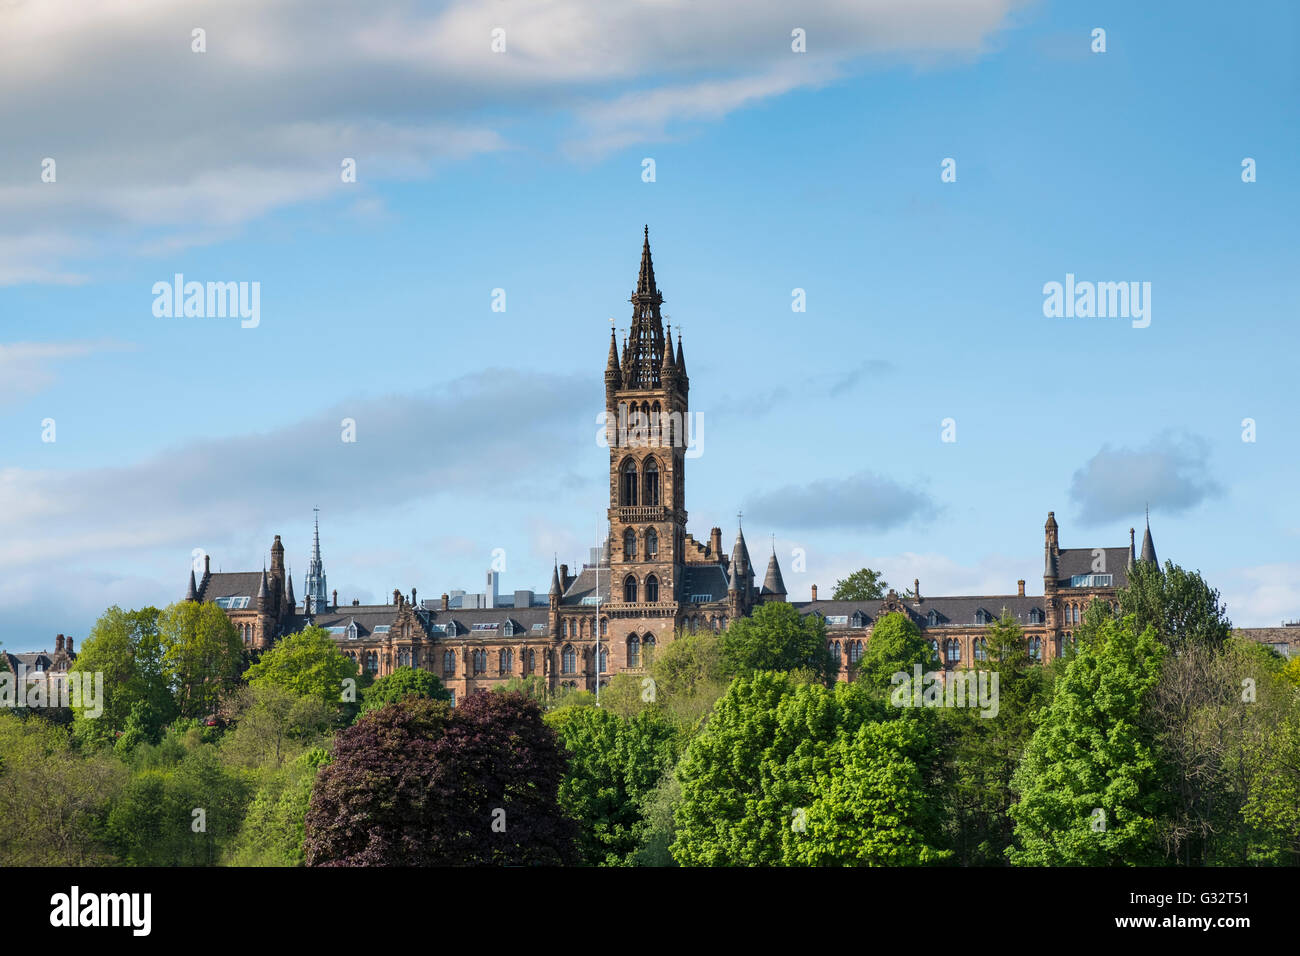 View of Gothic architecture of Glasgow University in Scotland, United Kingdom - Stock Image